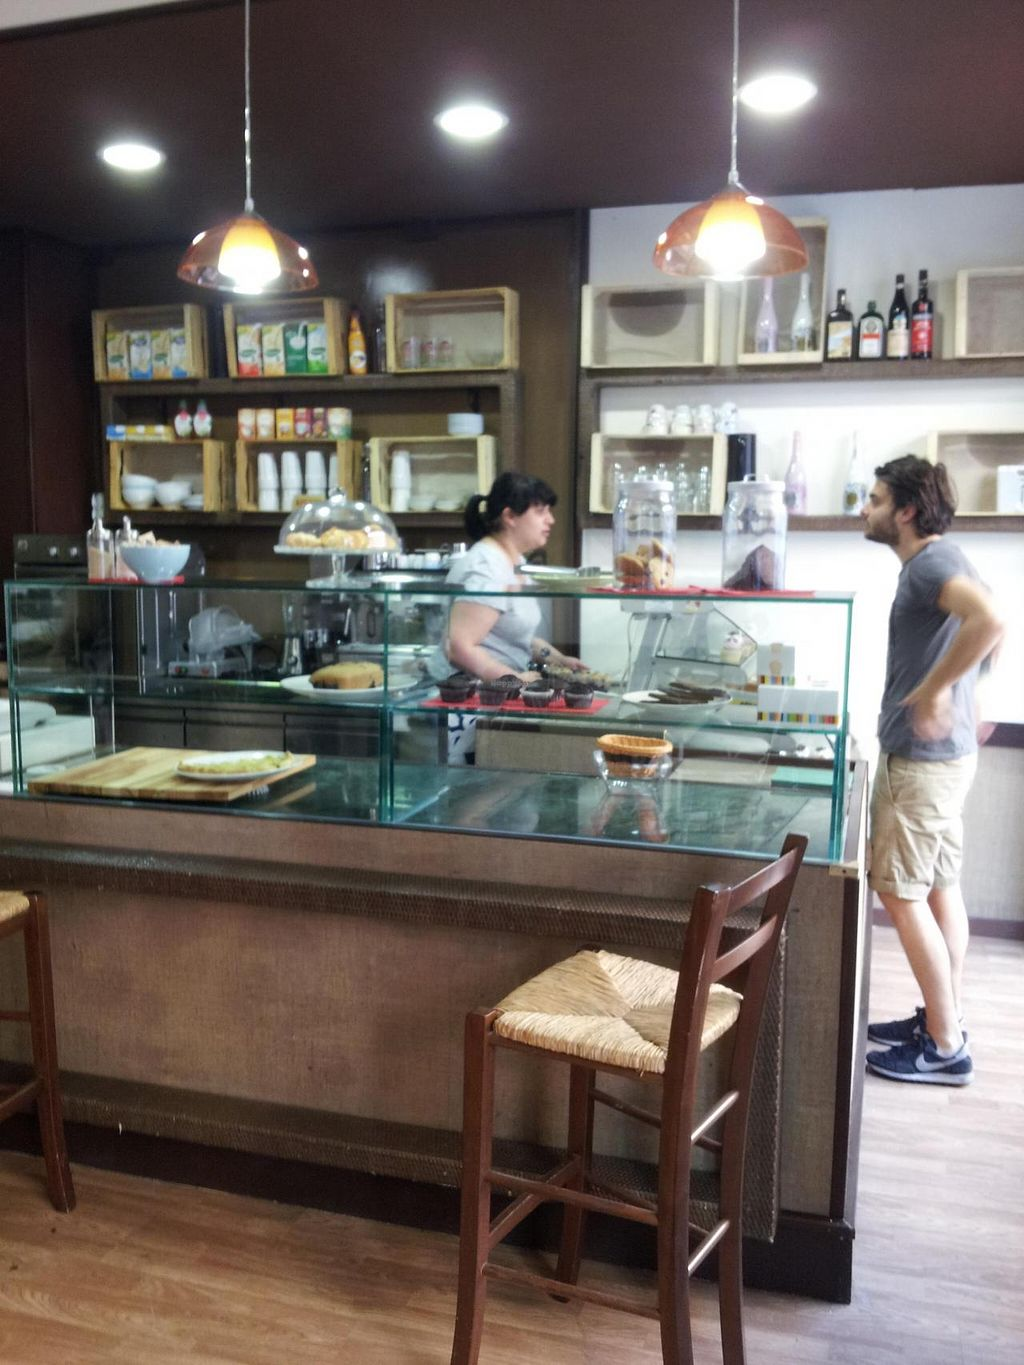 """Photo of Alhambra Cafe  by <a href=""""/members/profile/L_Almo_Clelarco"""">L_Almo_Clelarco</a> <br/>The counter <br/> June 13, 2014  - <a href='/contact/abuse/image/47914/71949'>Report</a>"""